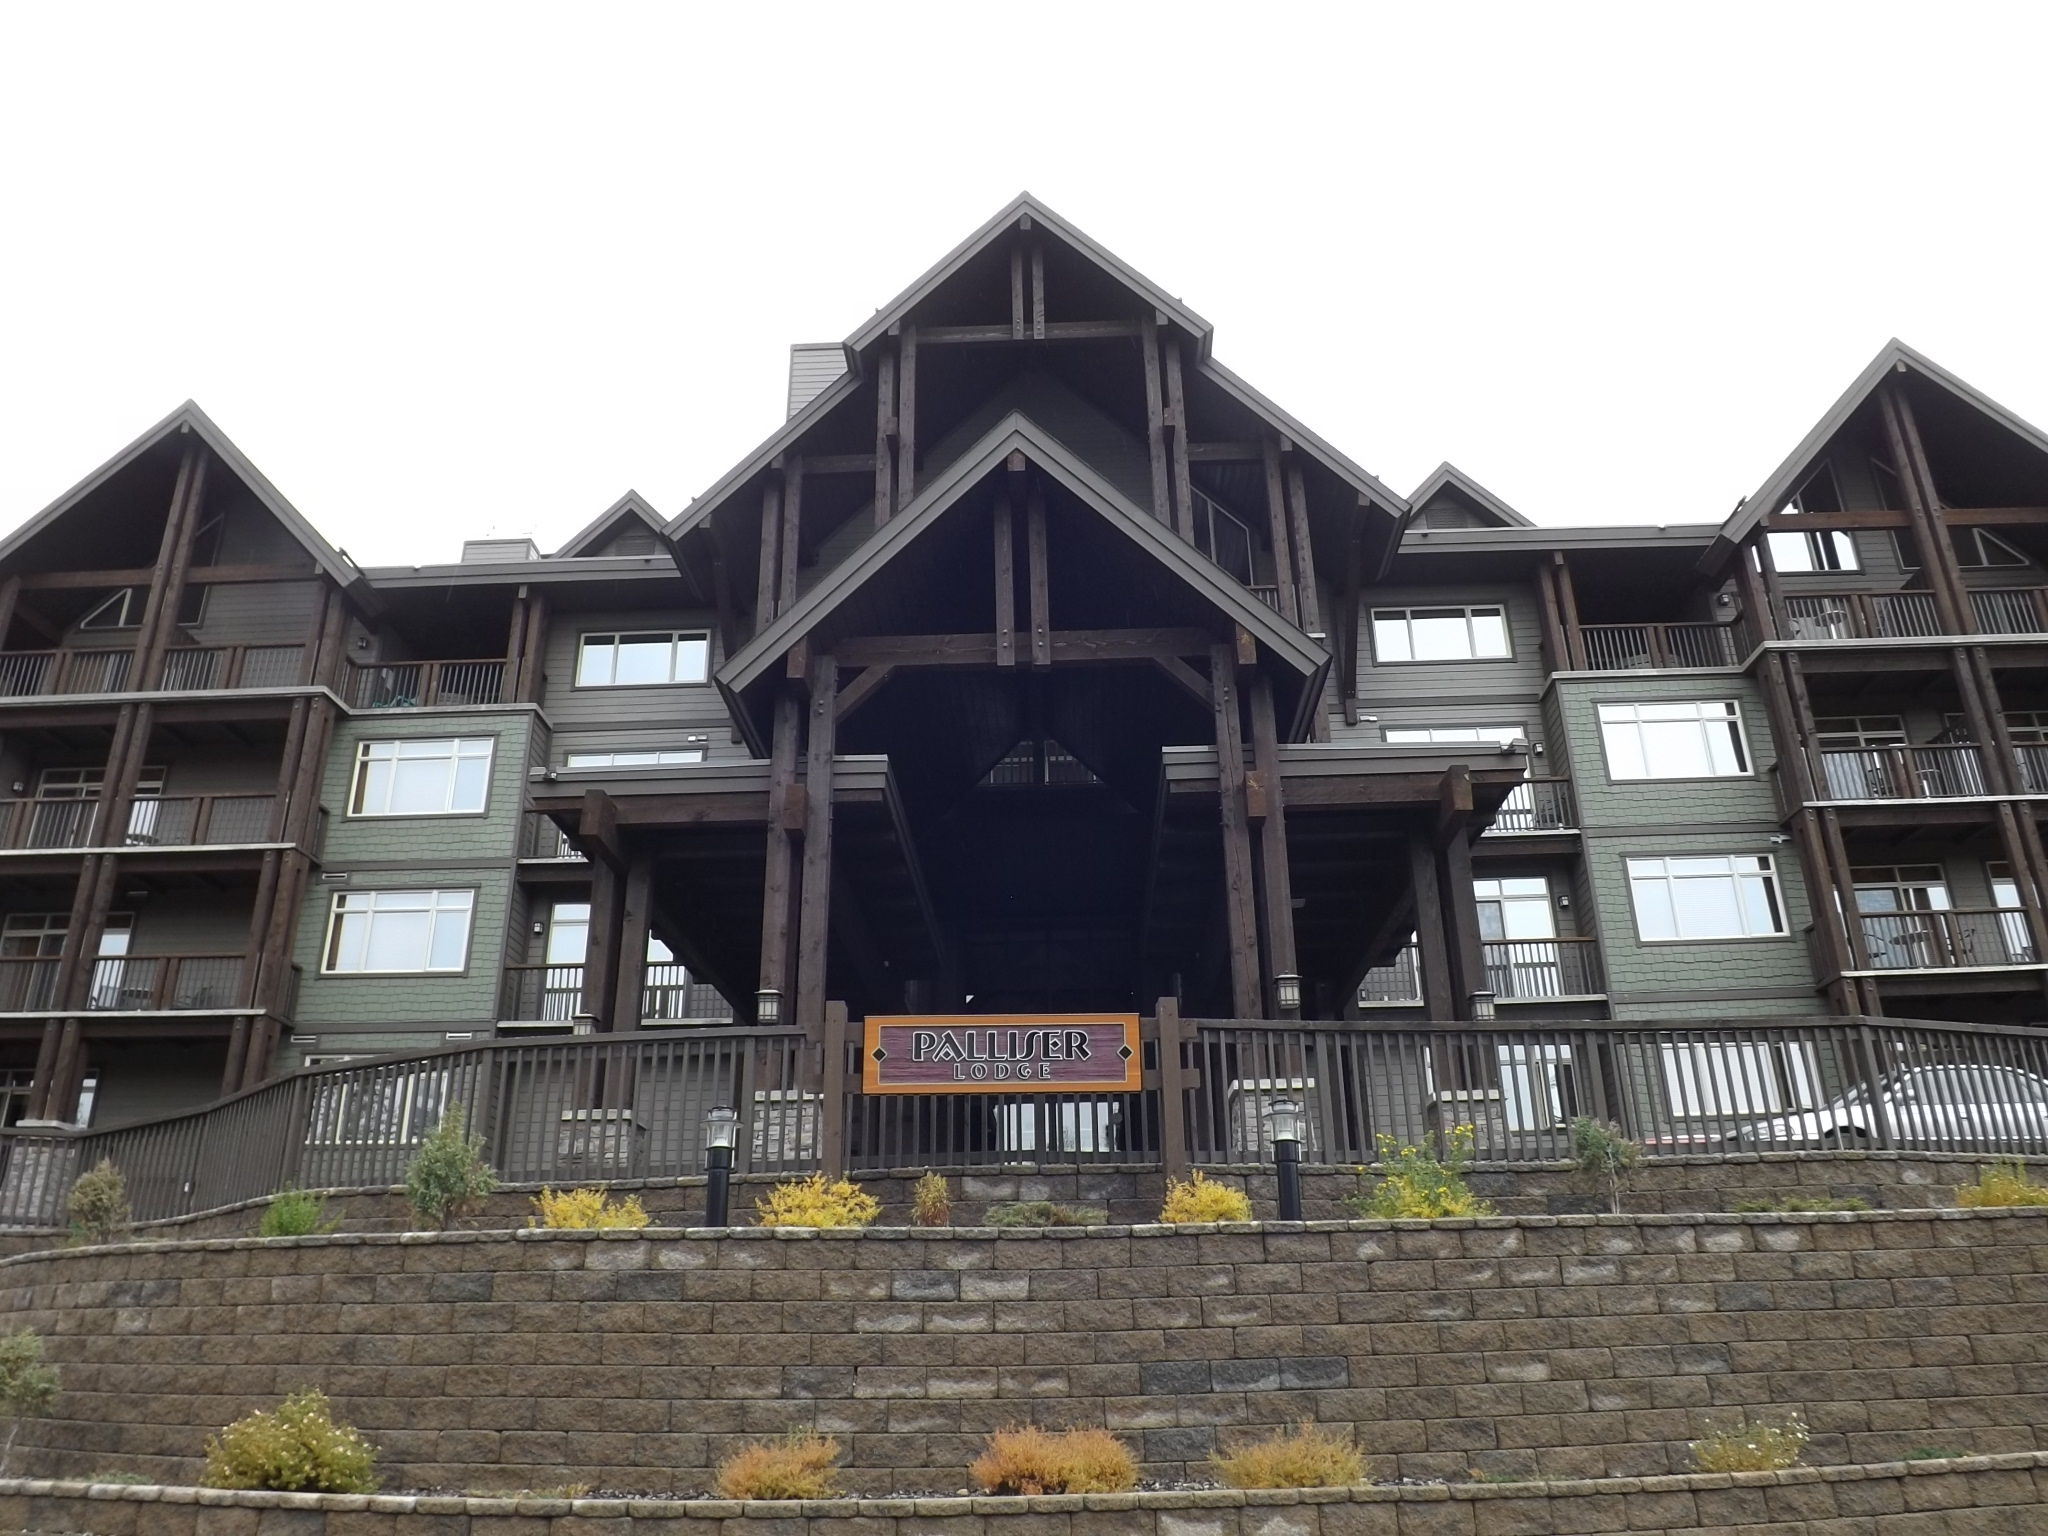 This is an example of a property located in Kicking Horse Resort, British Columbia whose Depreciation Report has been completed by Delta Appraisal Corporation